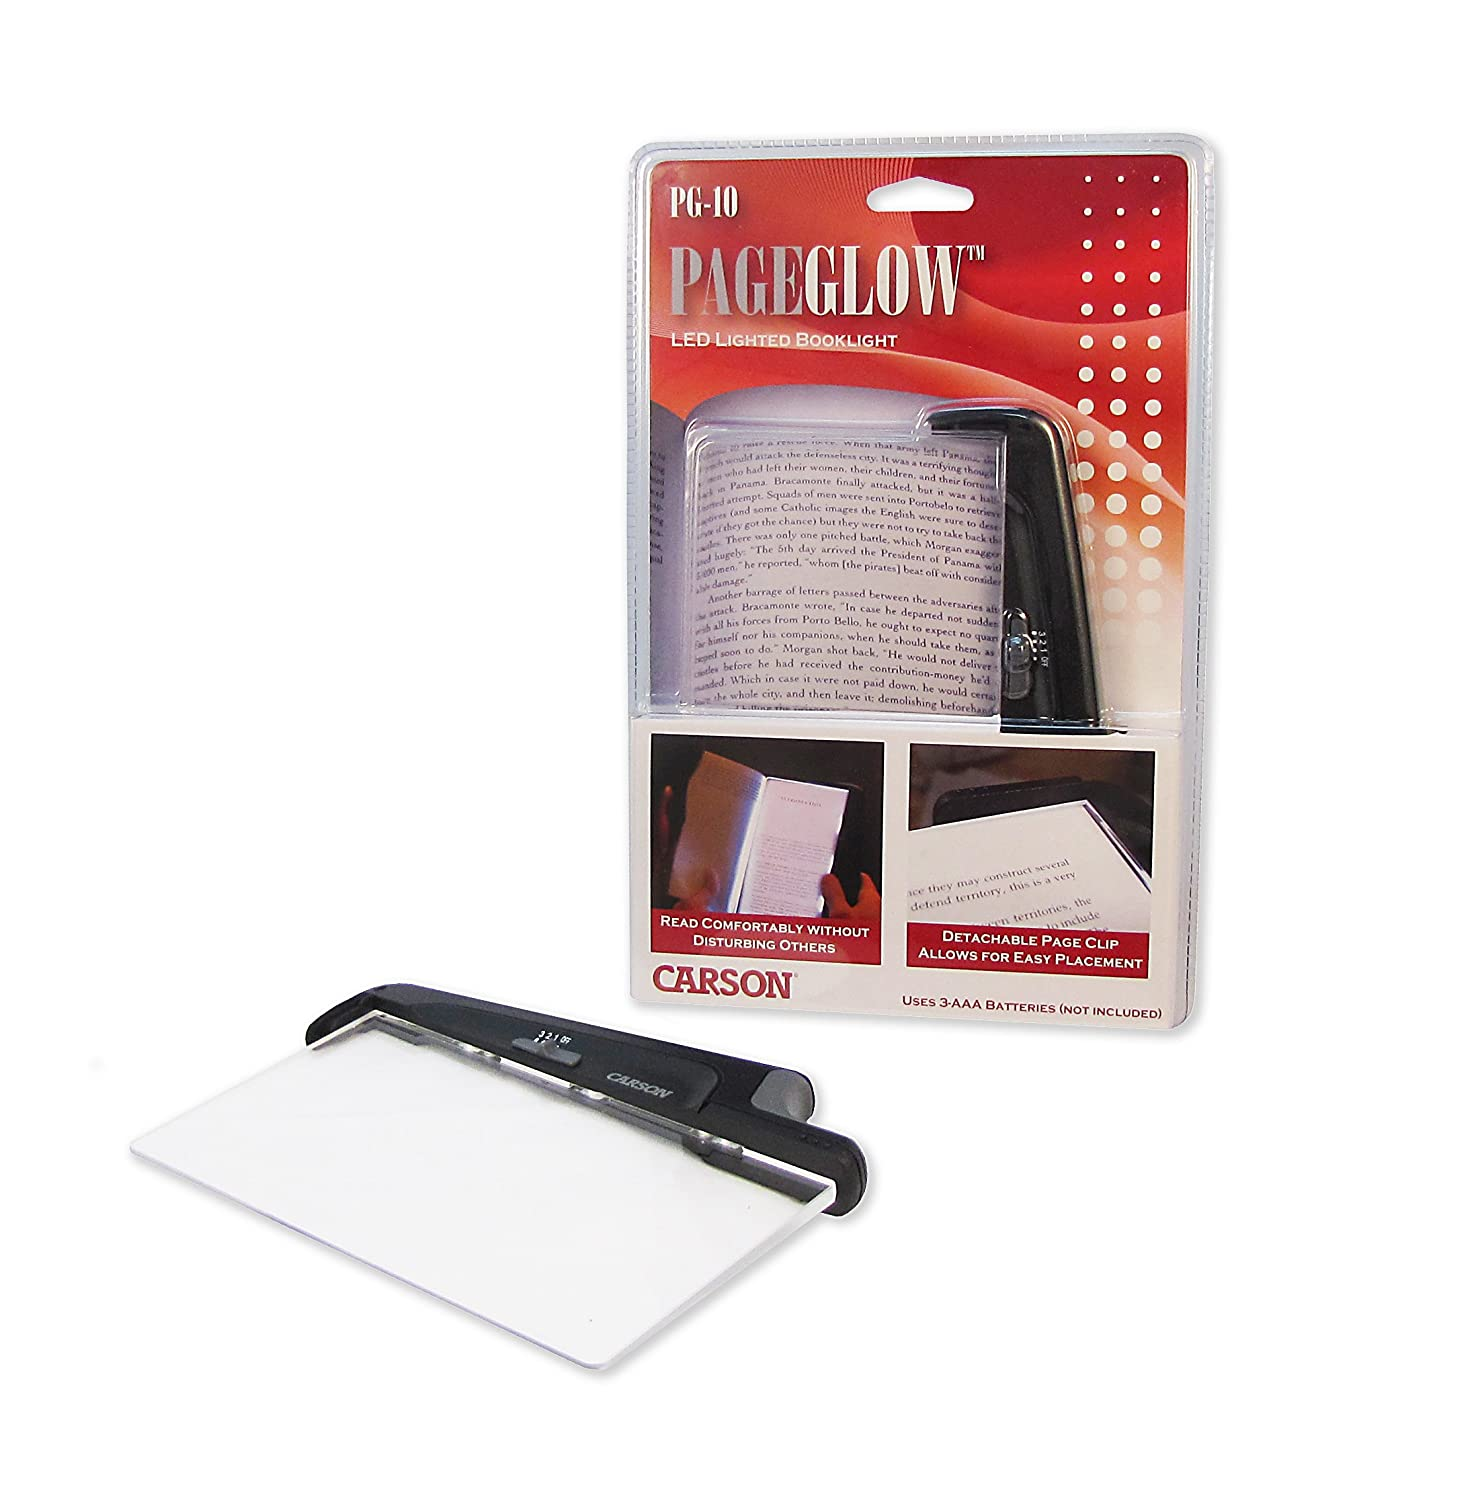 Carson PageGlow Battery Powered LED Paperback Book Light with Detachable Page Clip